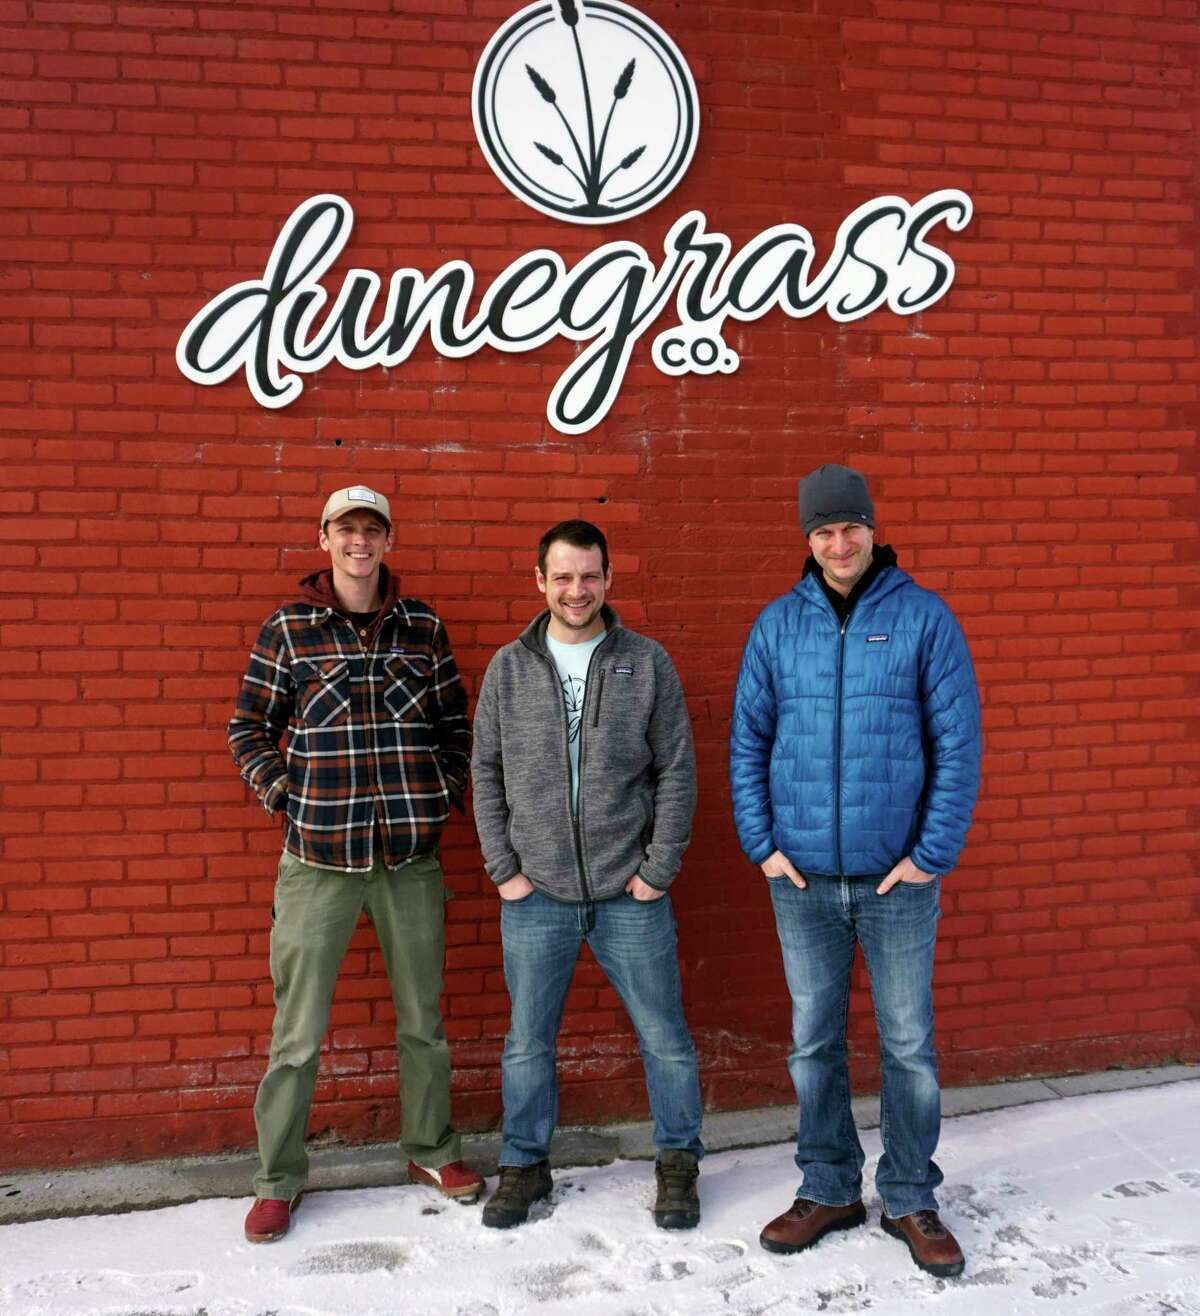 From left to right: cousin Chris Piedmonte stands with brothers Eric and Nick Piedmonte in front of the soon-to-open Dunegrass Co. adult-use cannabis facility. (Pioneer photo/Joe Judd)